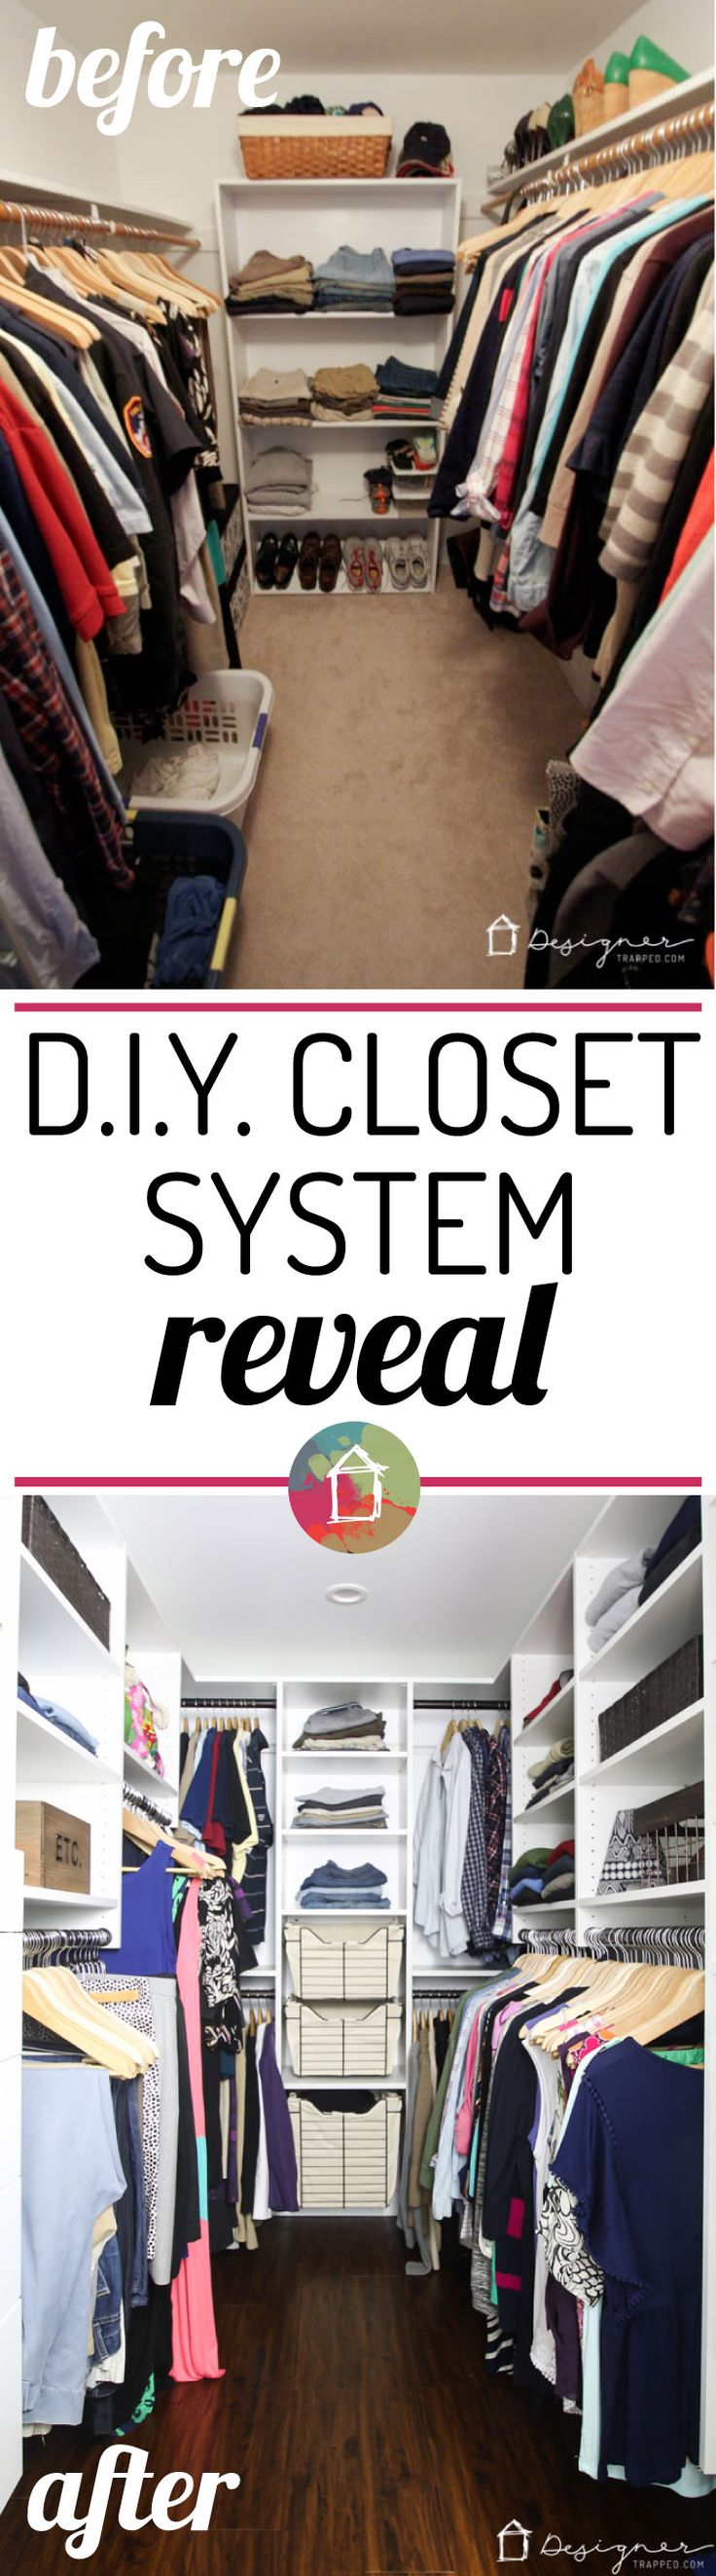 If you are looking for a DIY closet system that is high-quality, easy to install and reasonably priced, this is it. I am 100% in love with my new closet.